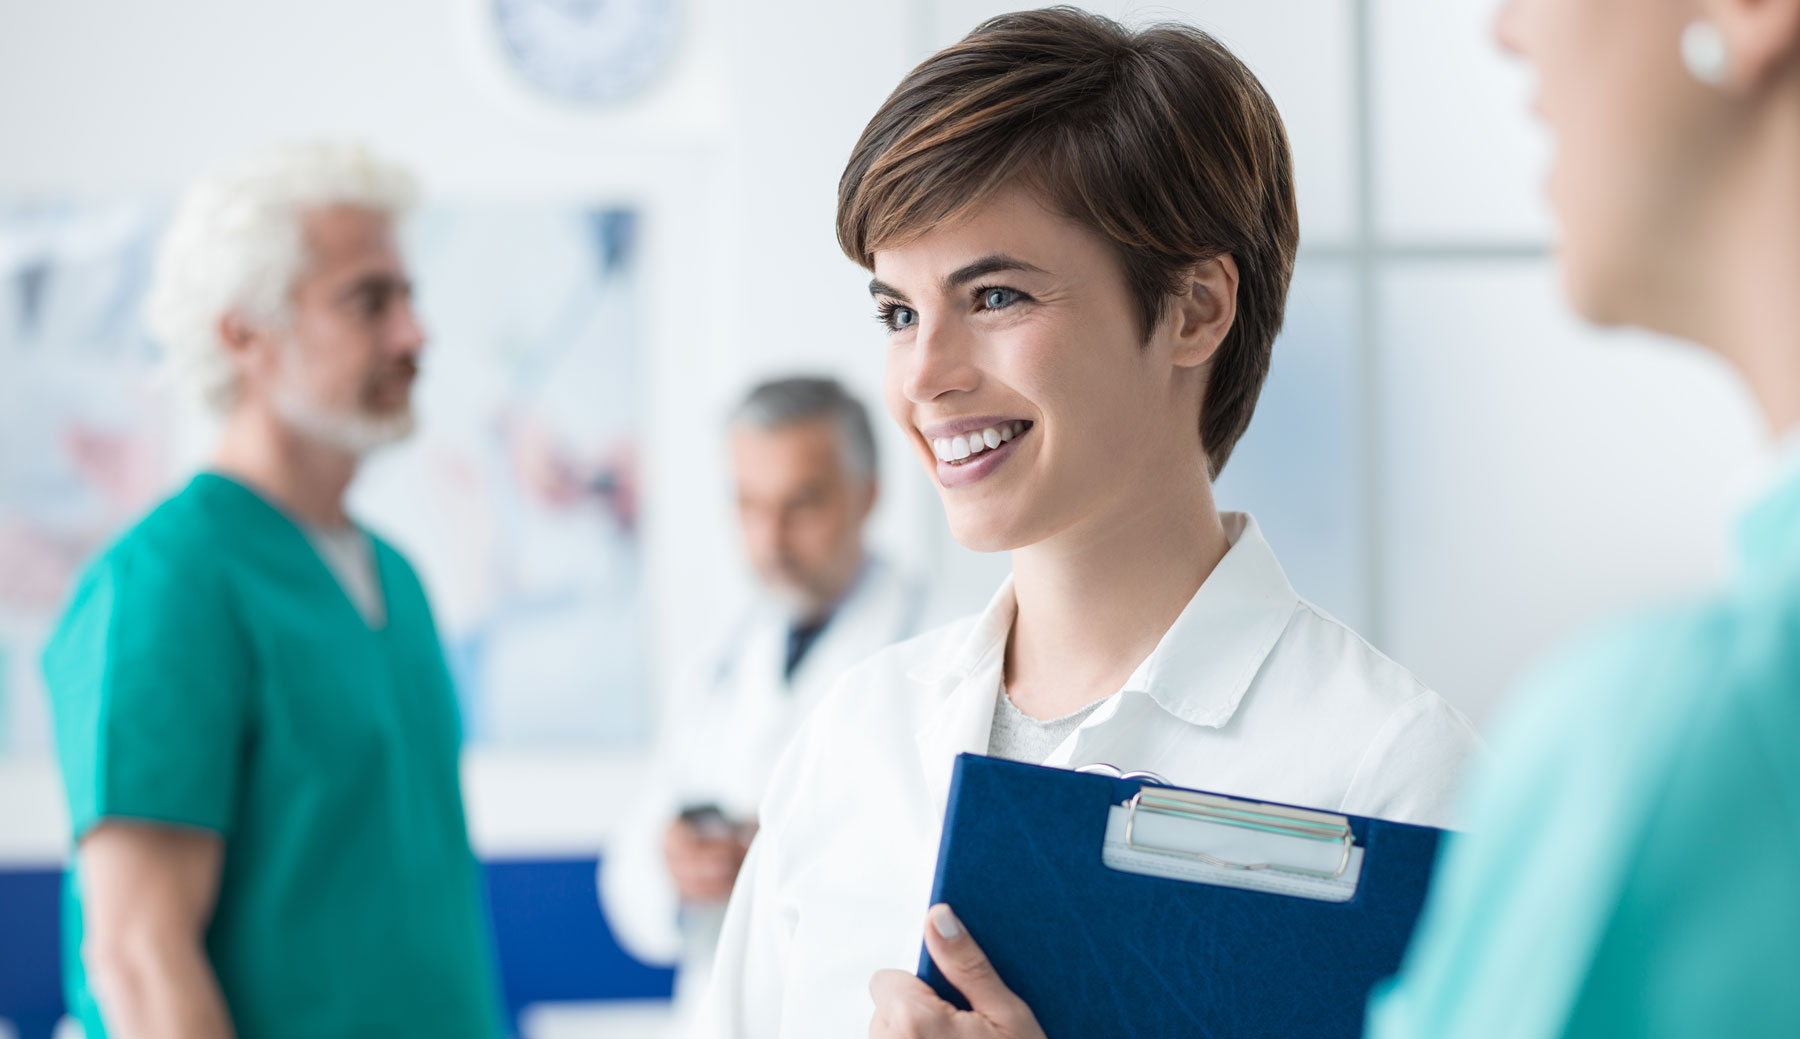 Trade-in-your-permanent-address-to-become-a-travel-nurse